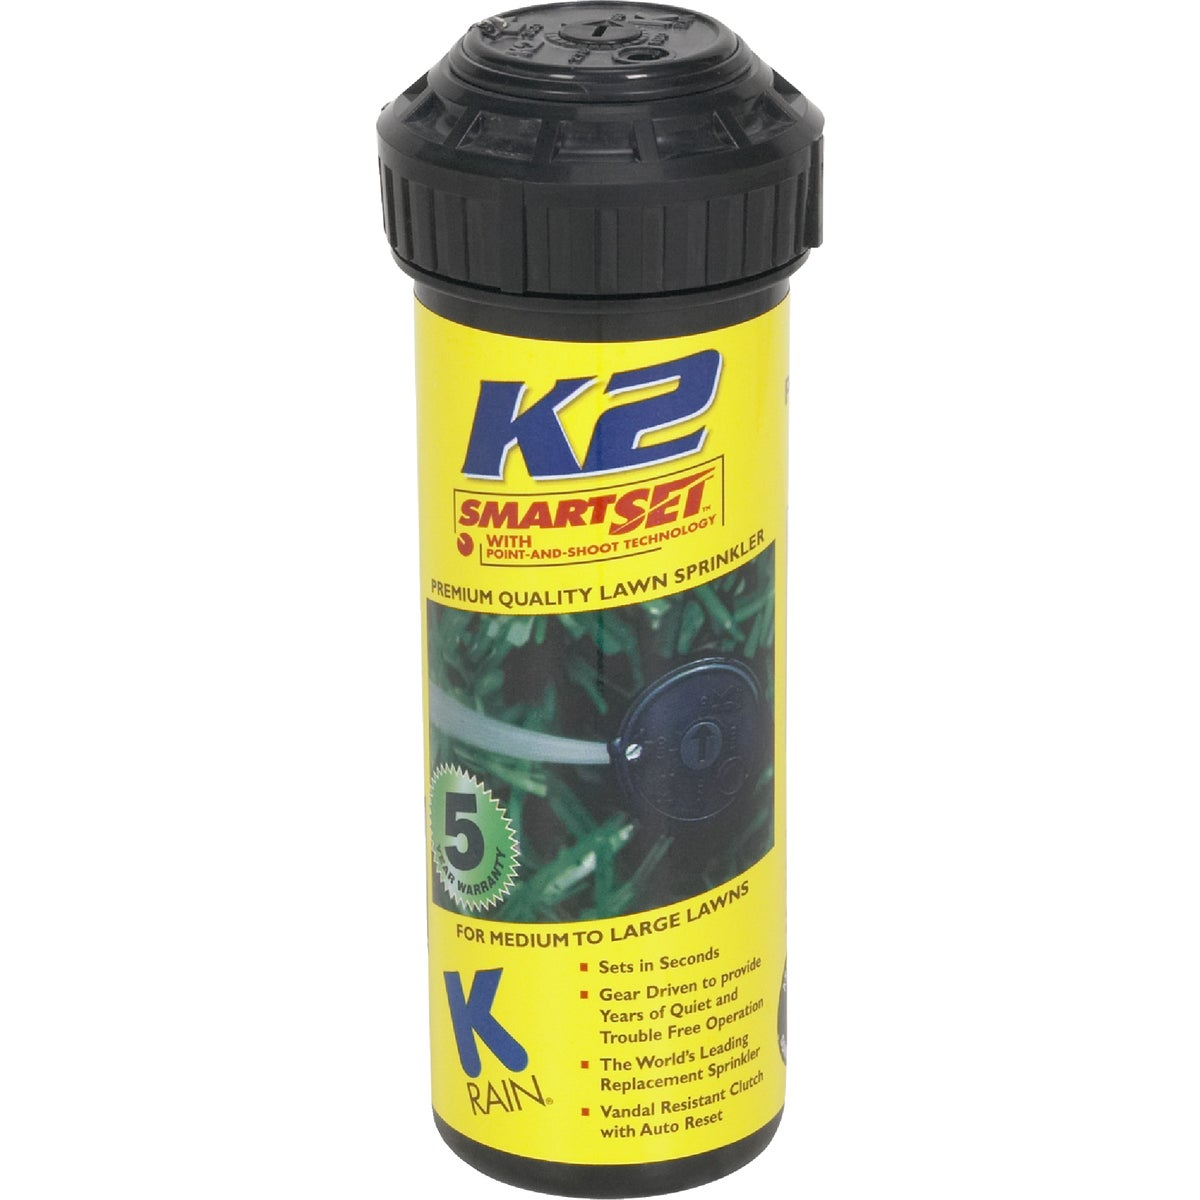 K2 GEAR DRIVE SPRINKLER - 91031 by K Rain Mfg Corp